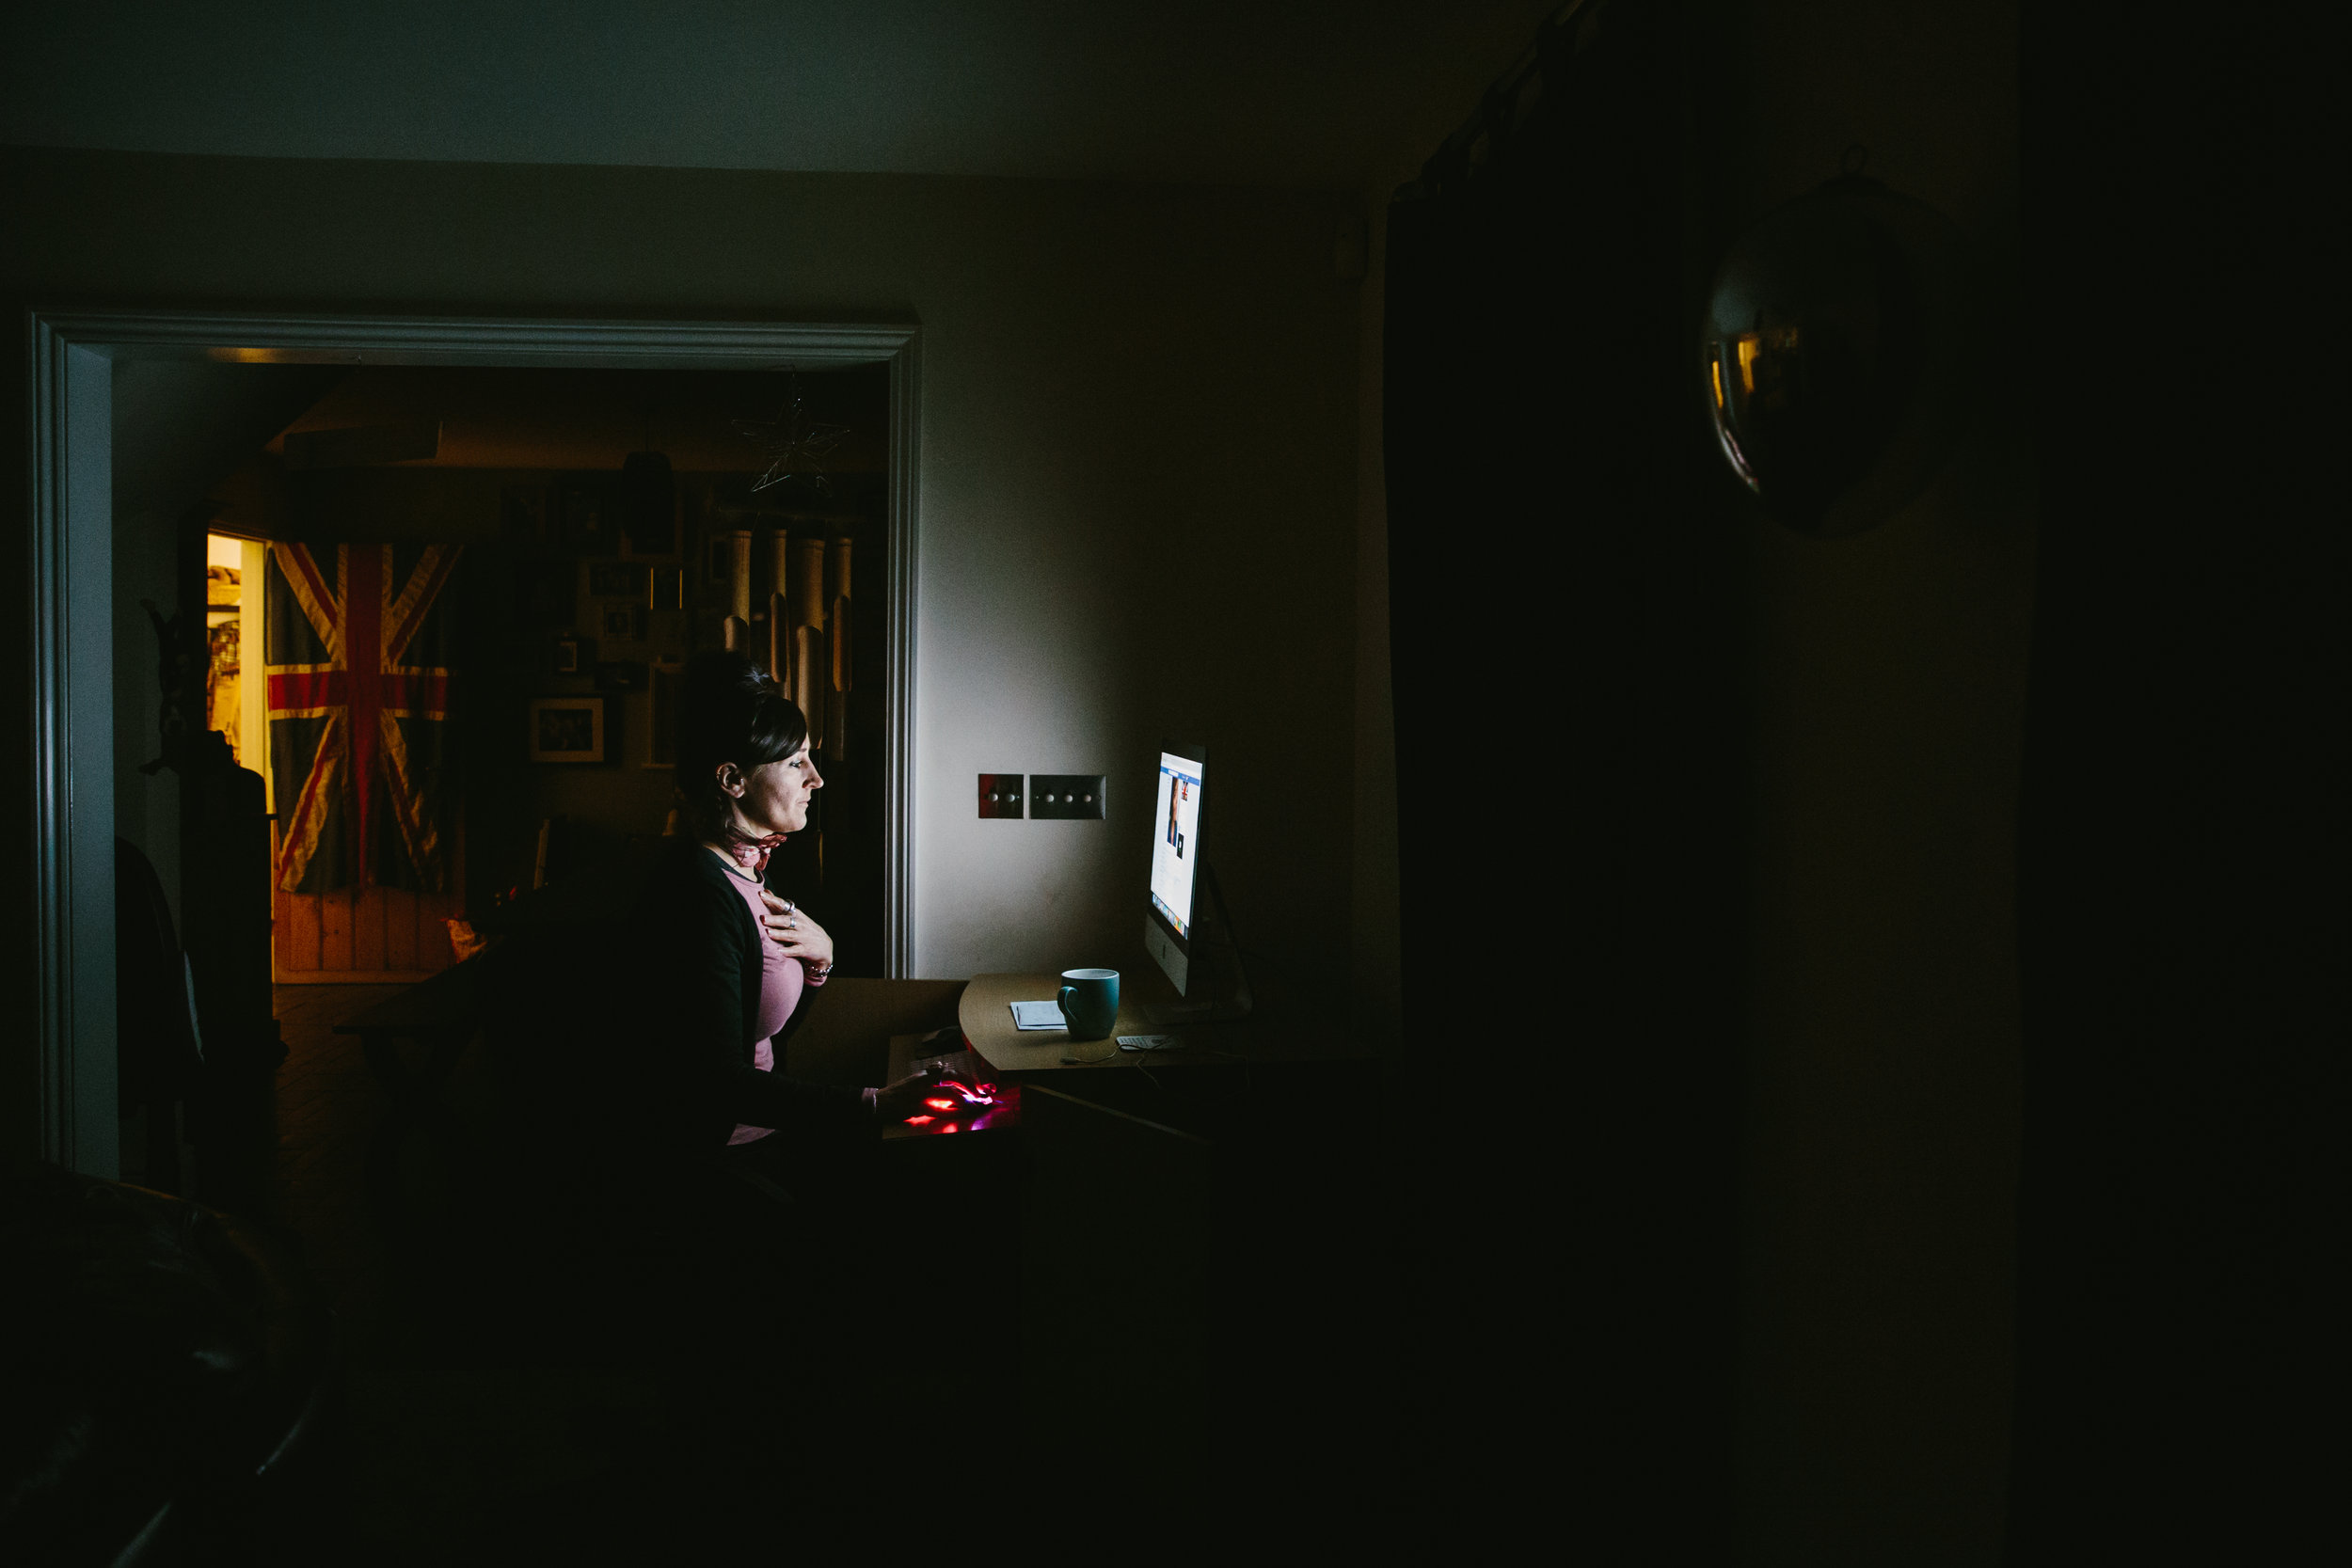 Kath runs the operation from her living room, often working late into the night. Members' stories frequently reduce her to tears